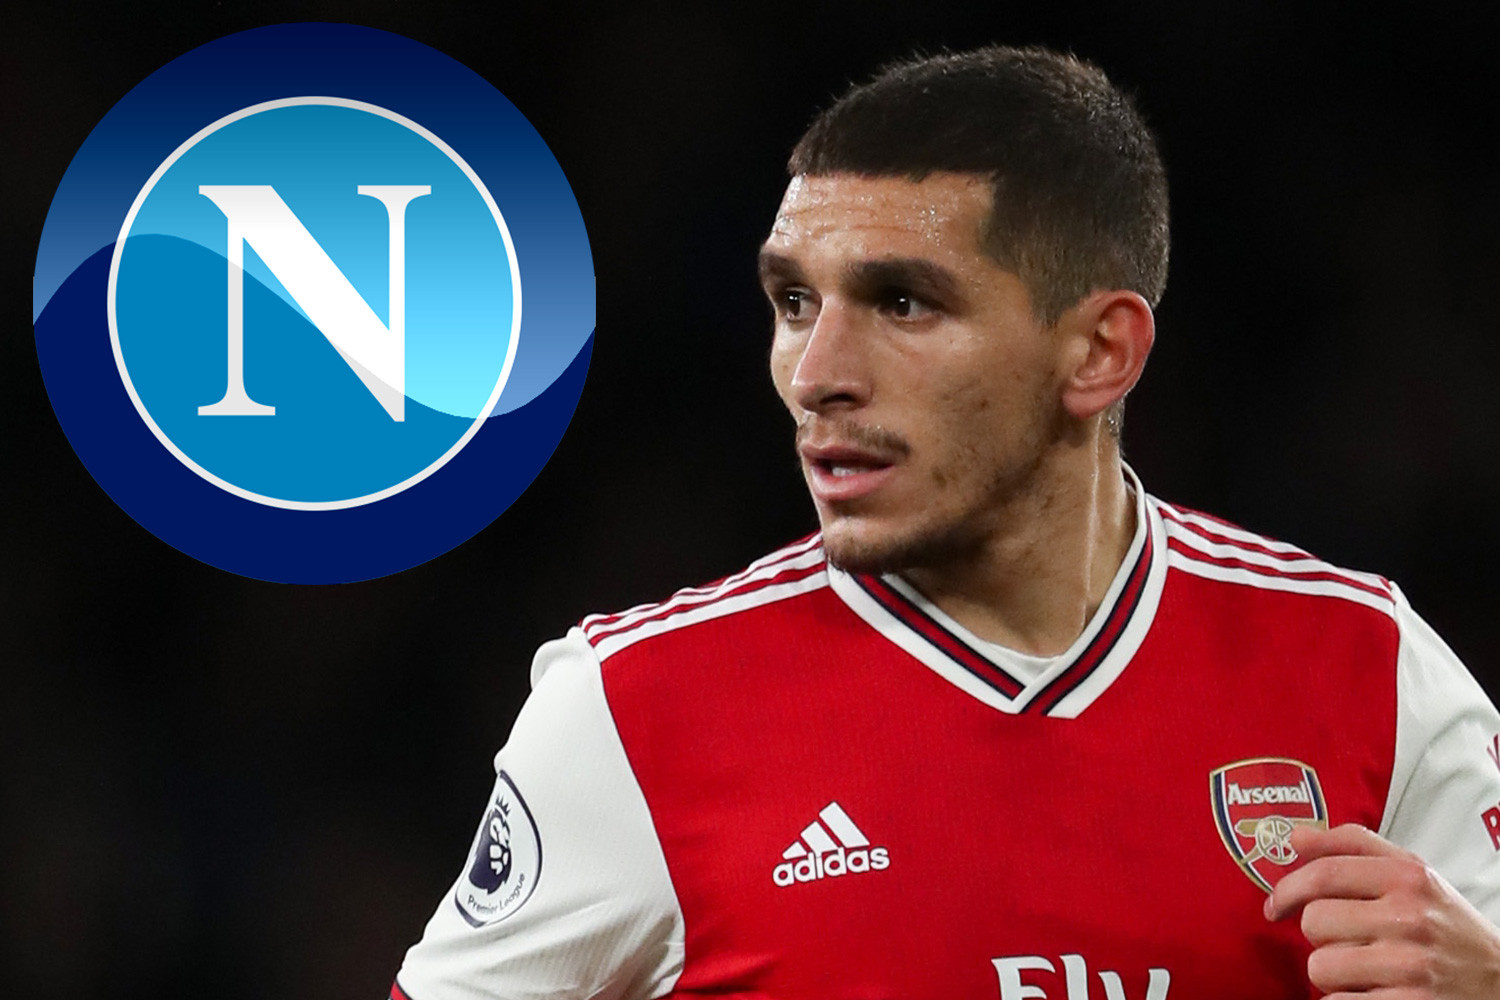 Torreira has played in just seven Premier League games this season